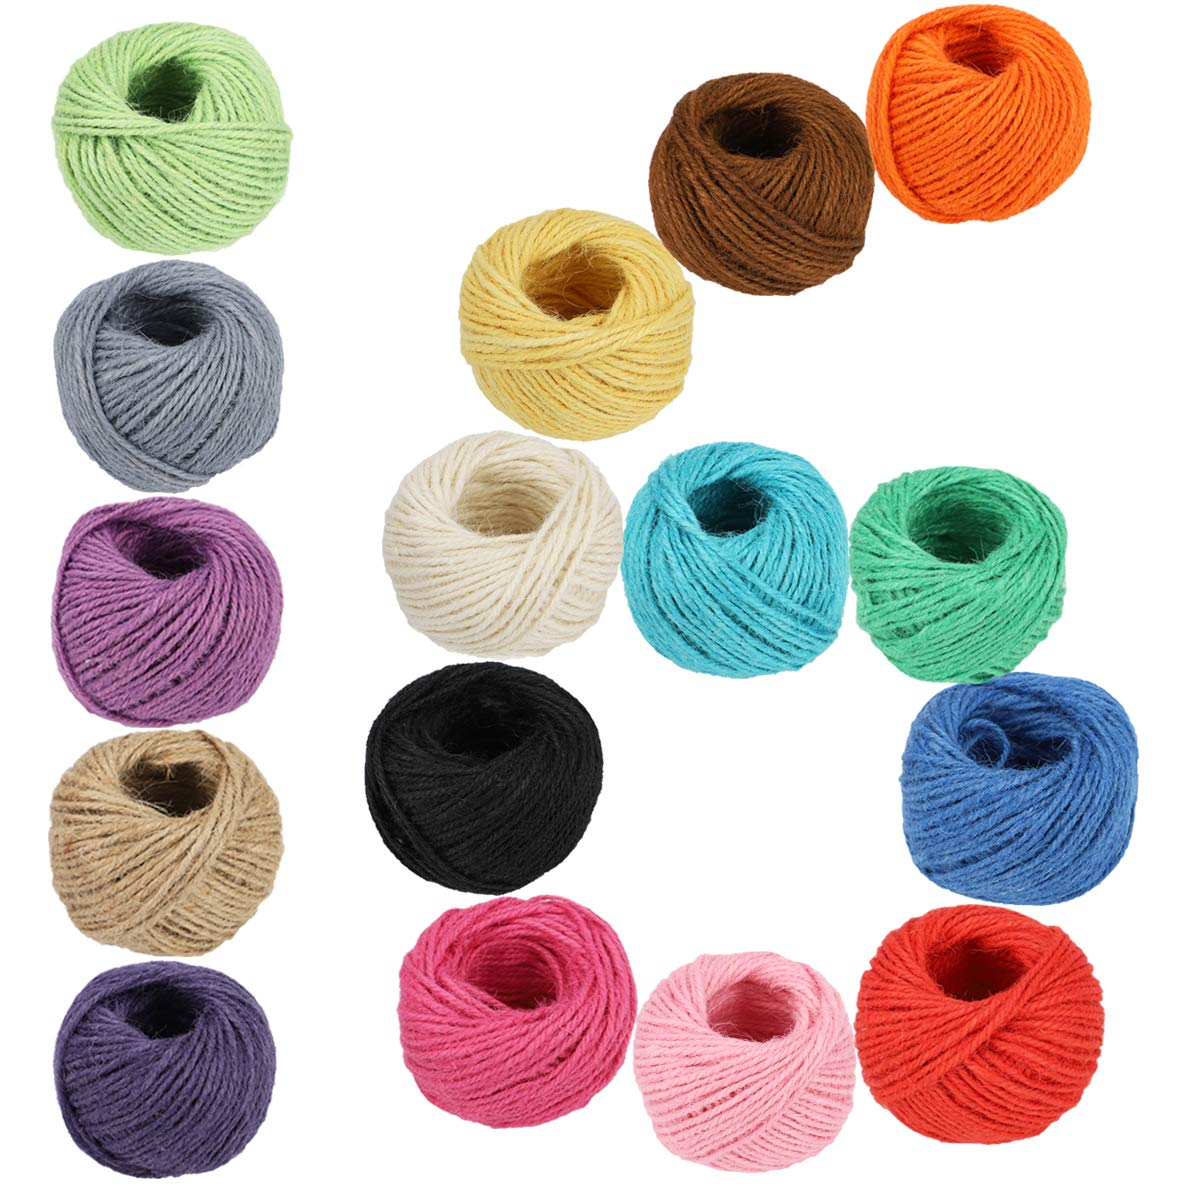 1312 Feet Jute Twine 16 Roll Strong Cord Thick Rope String for DIY Art Craft Gift Wrapping Home Garden Deco (16 Colors) by McFanBe